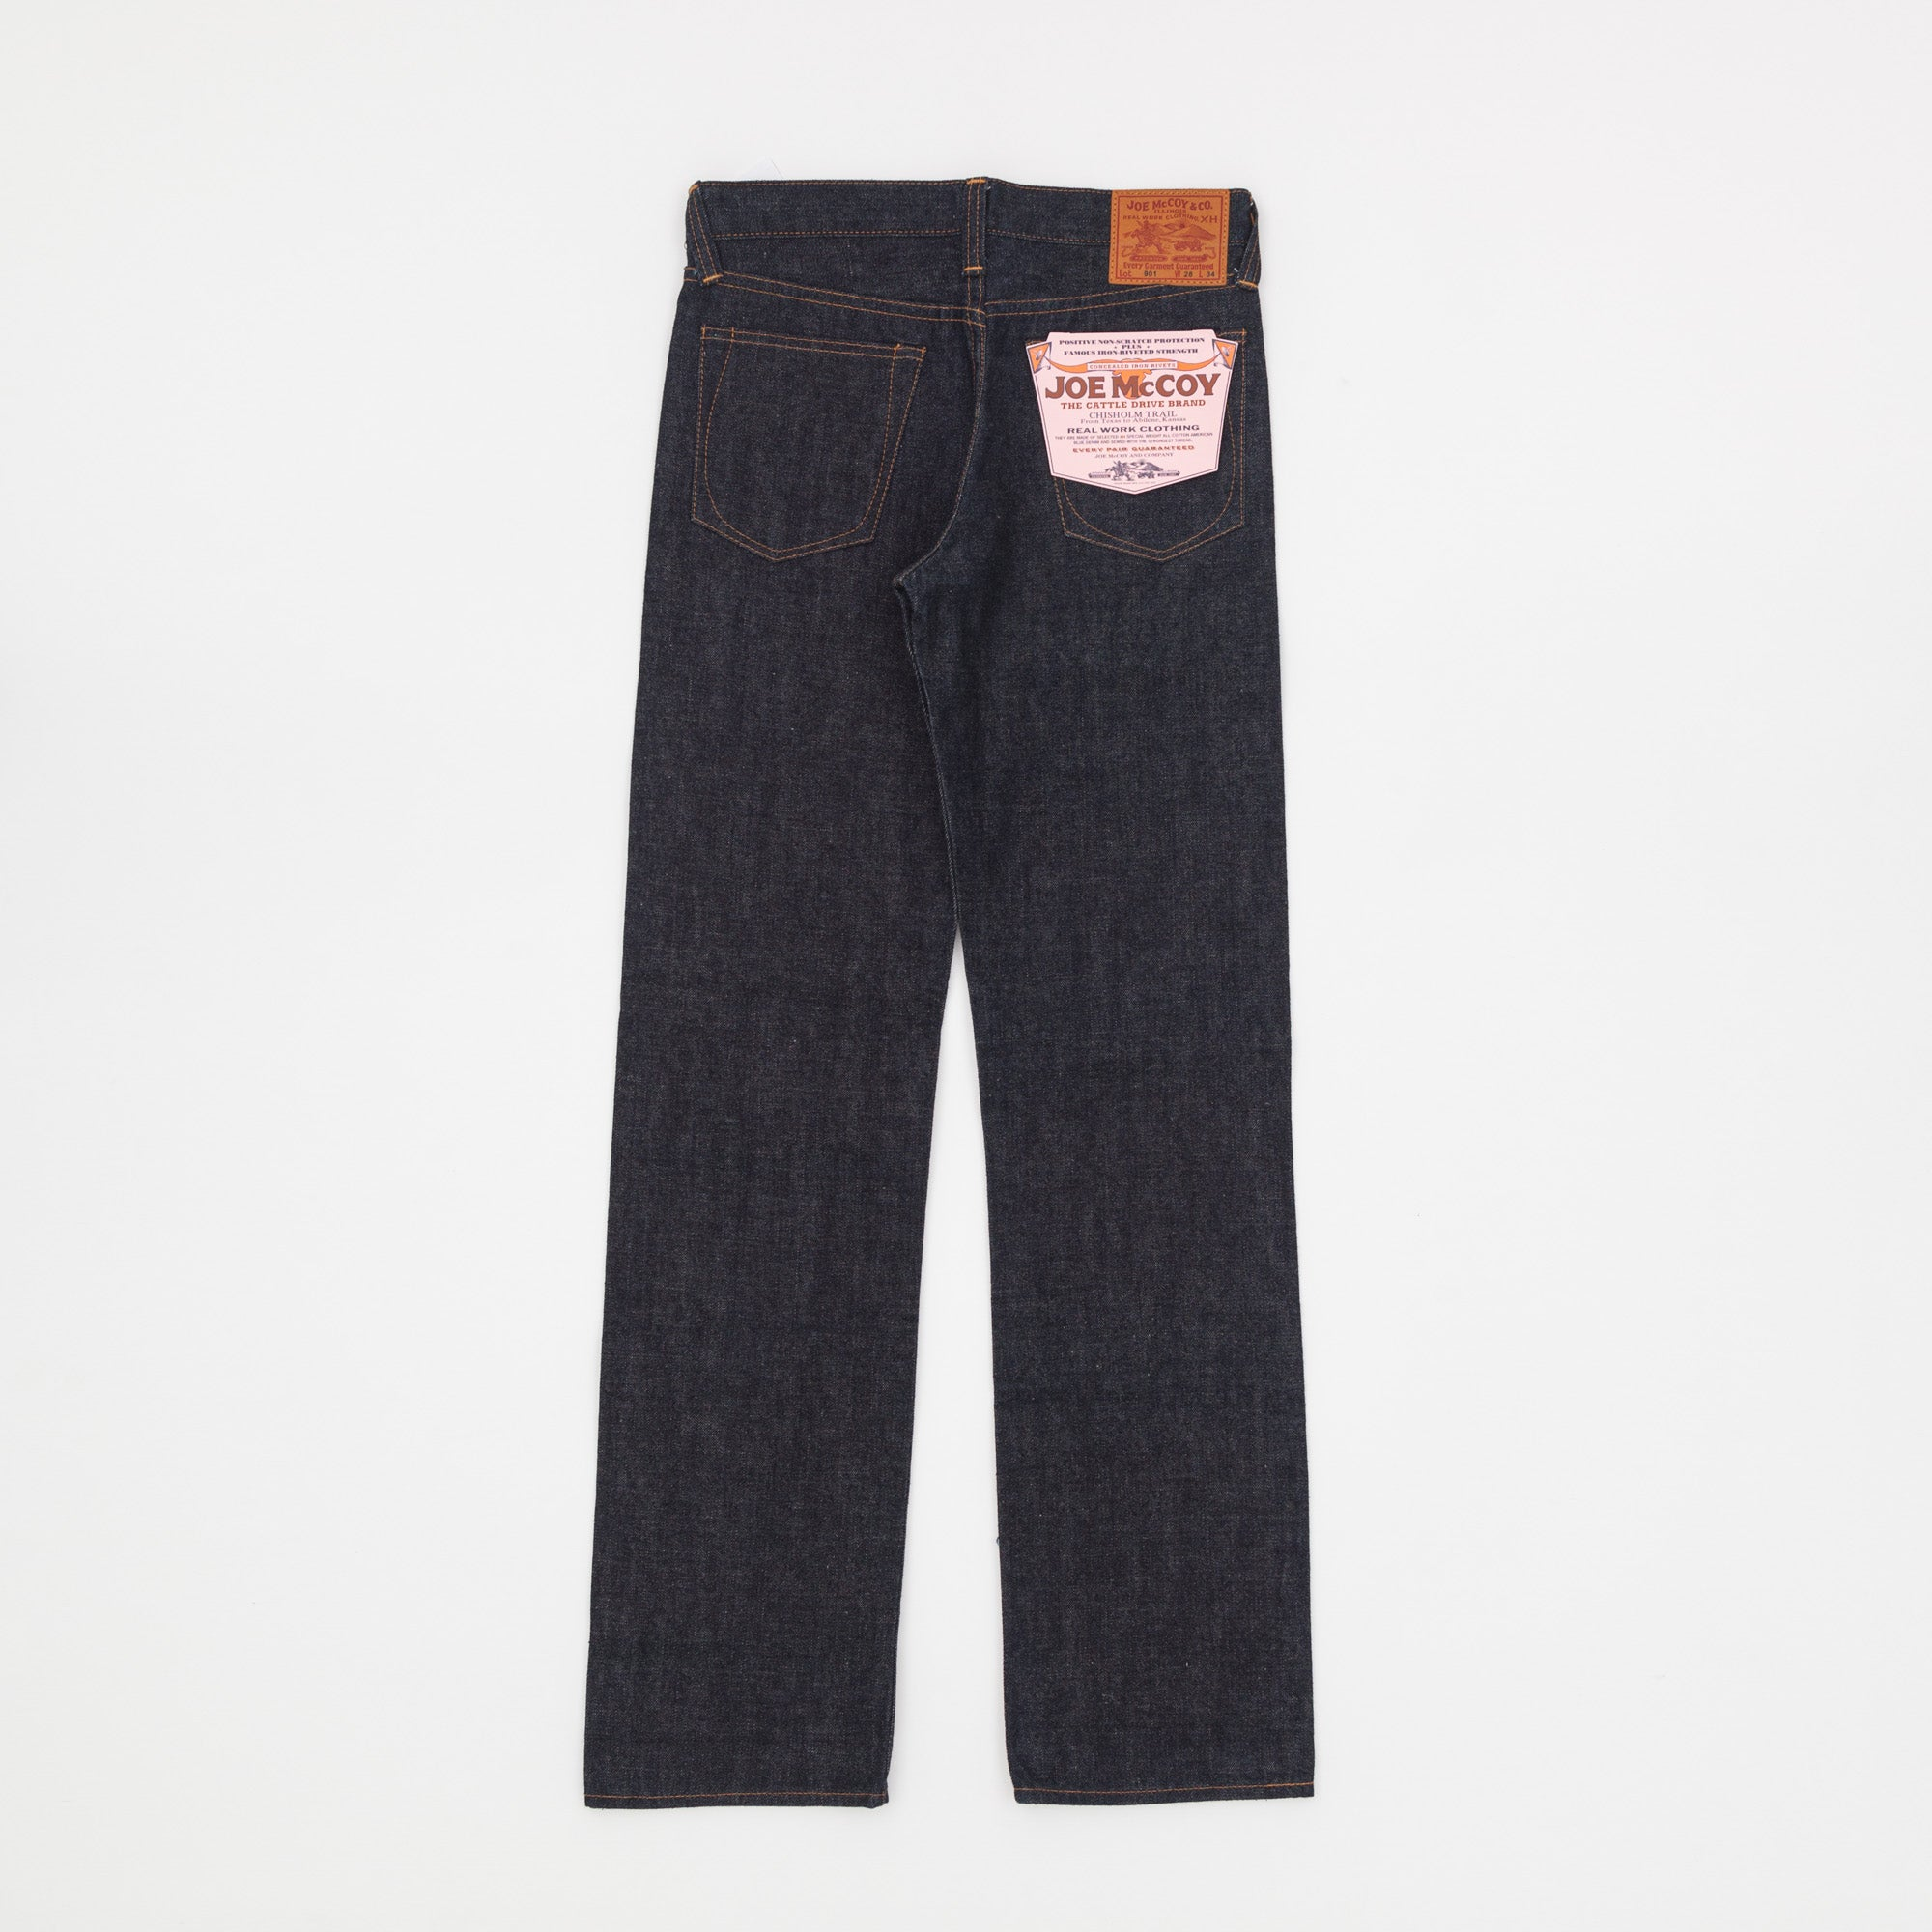 Joe McCoy Lot. 901 Denim